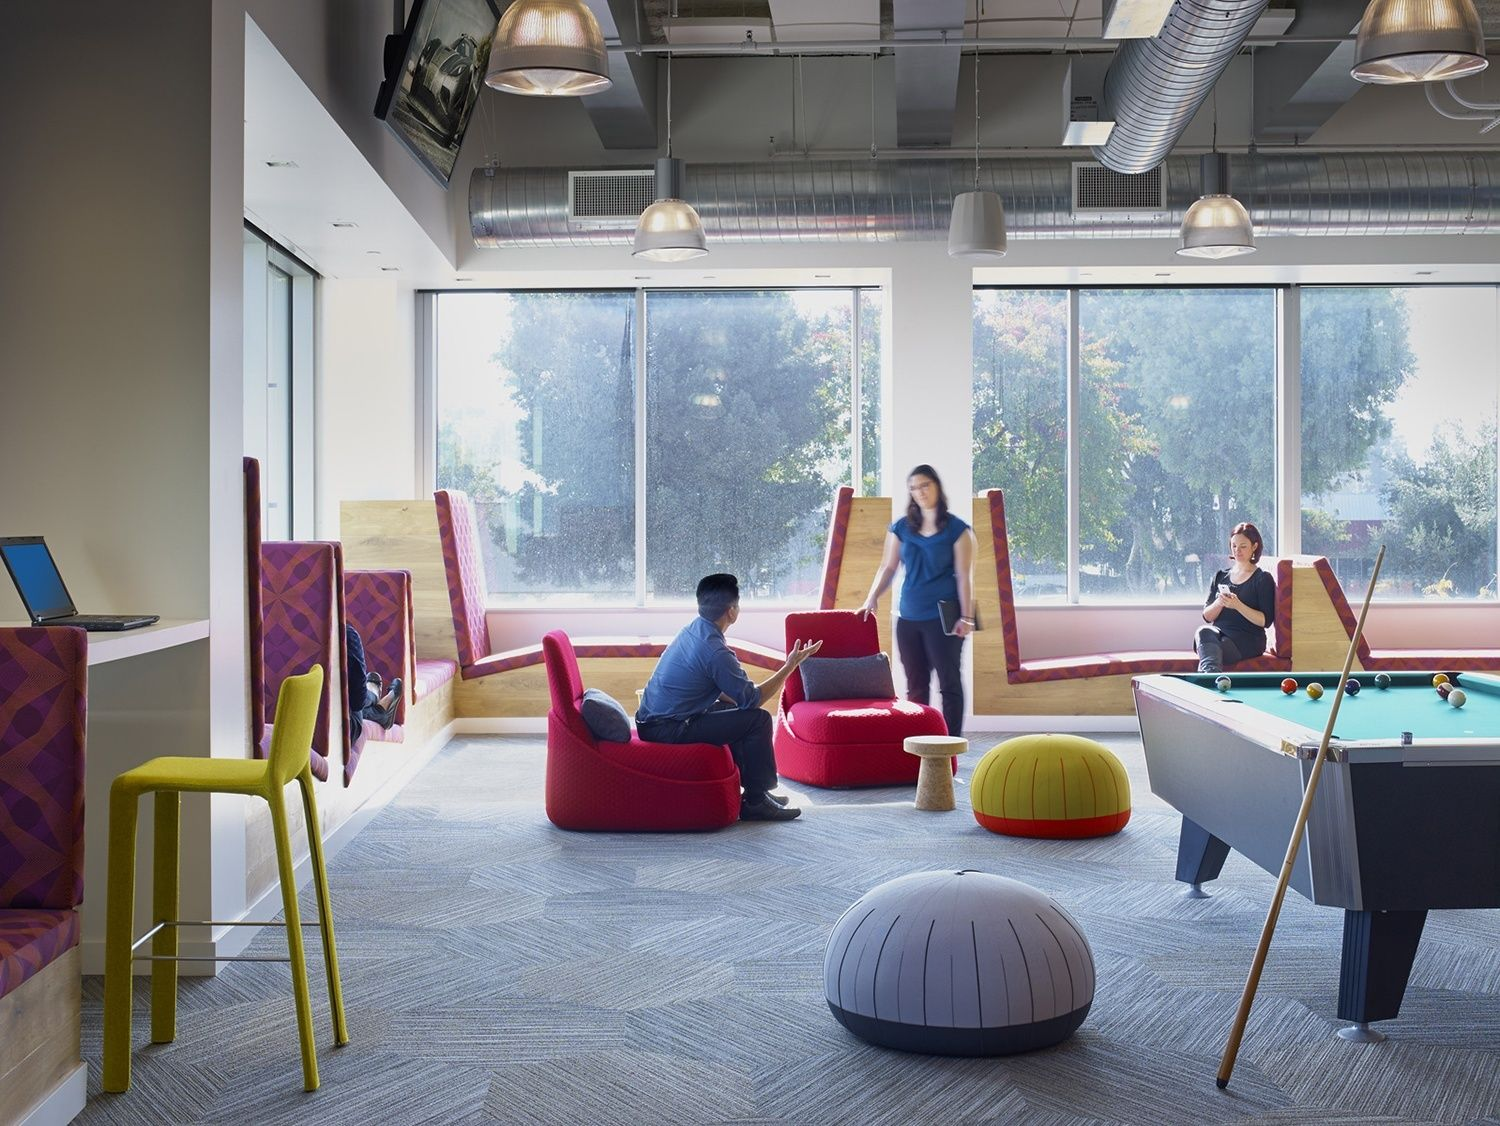 Take a Look at LinkedIn's New Sunnyvale Office Дизайн